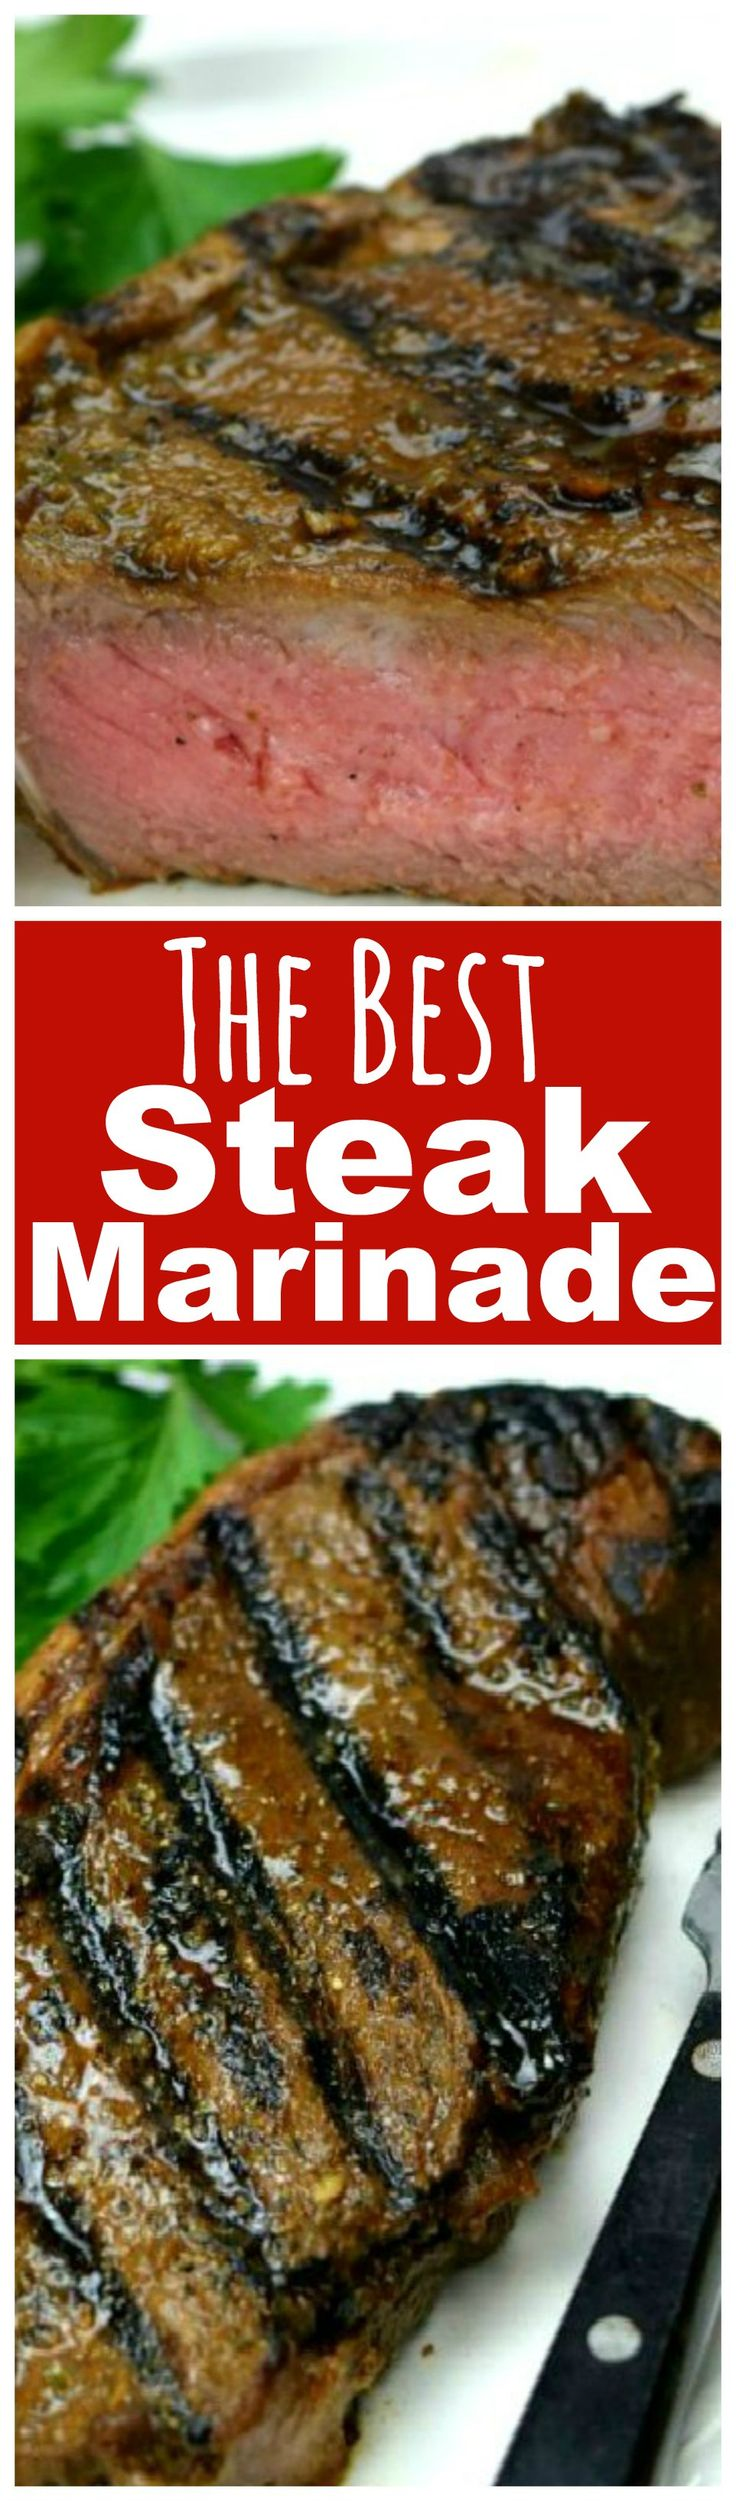 No more relegating steak to special occasion status! Even inexpensive cuts of beef will satisfy when you use my Steak Marinade. Fire up your grill, STAT!